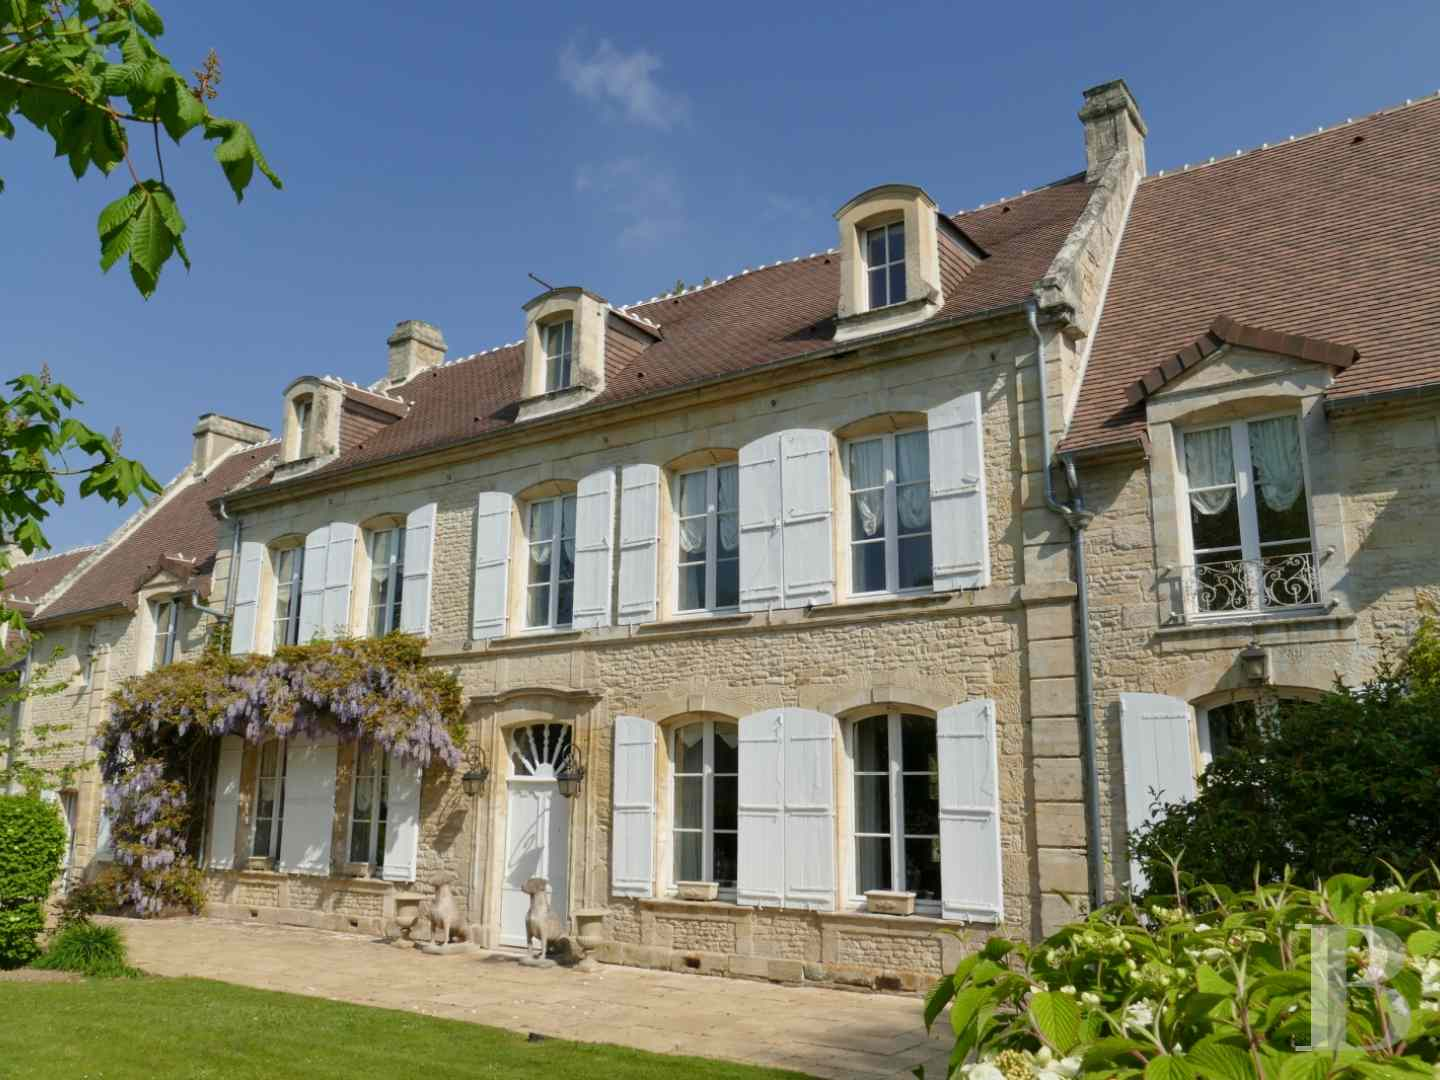 France mansions for sale lower normandy 4025  - 2 zoom